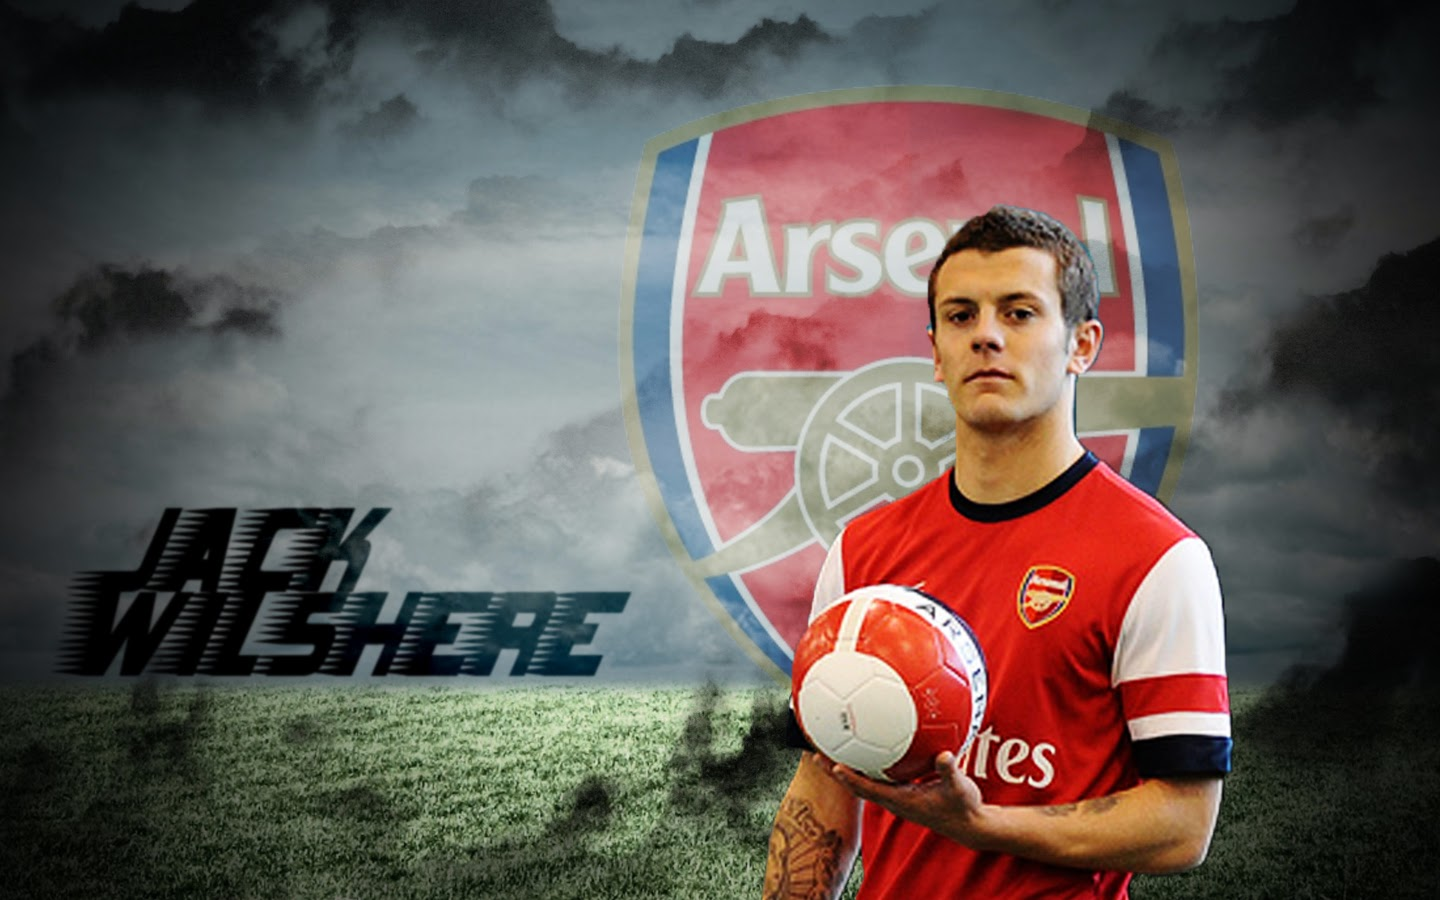 Wilshere set to be out until March due to Injury set back